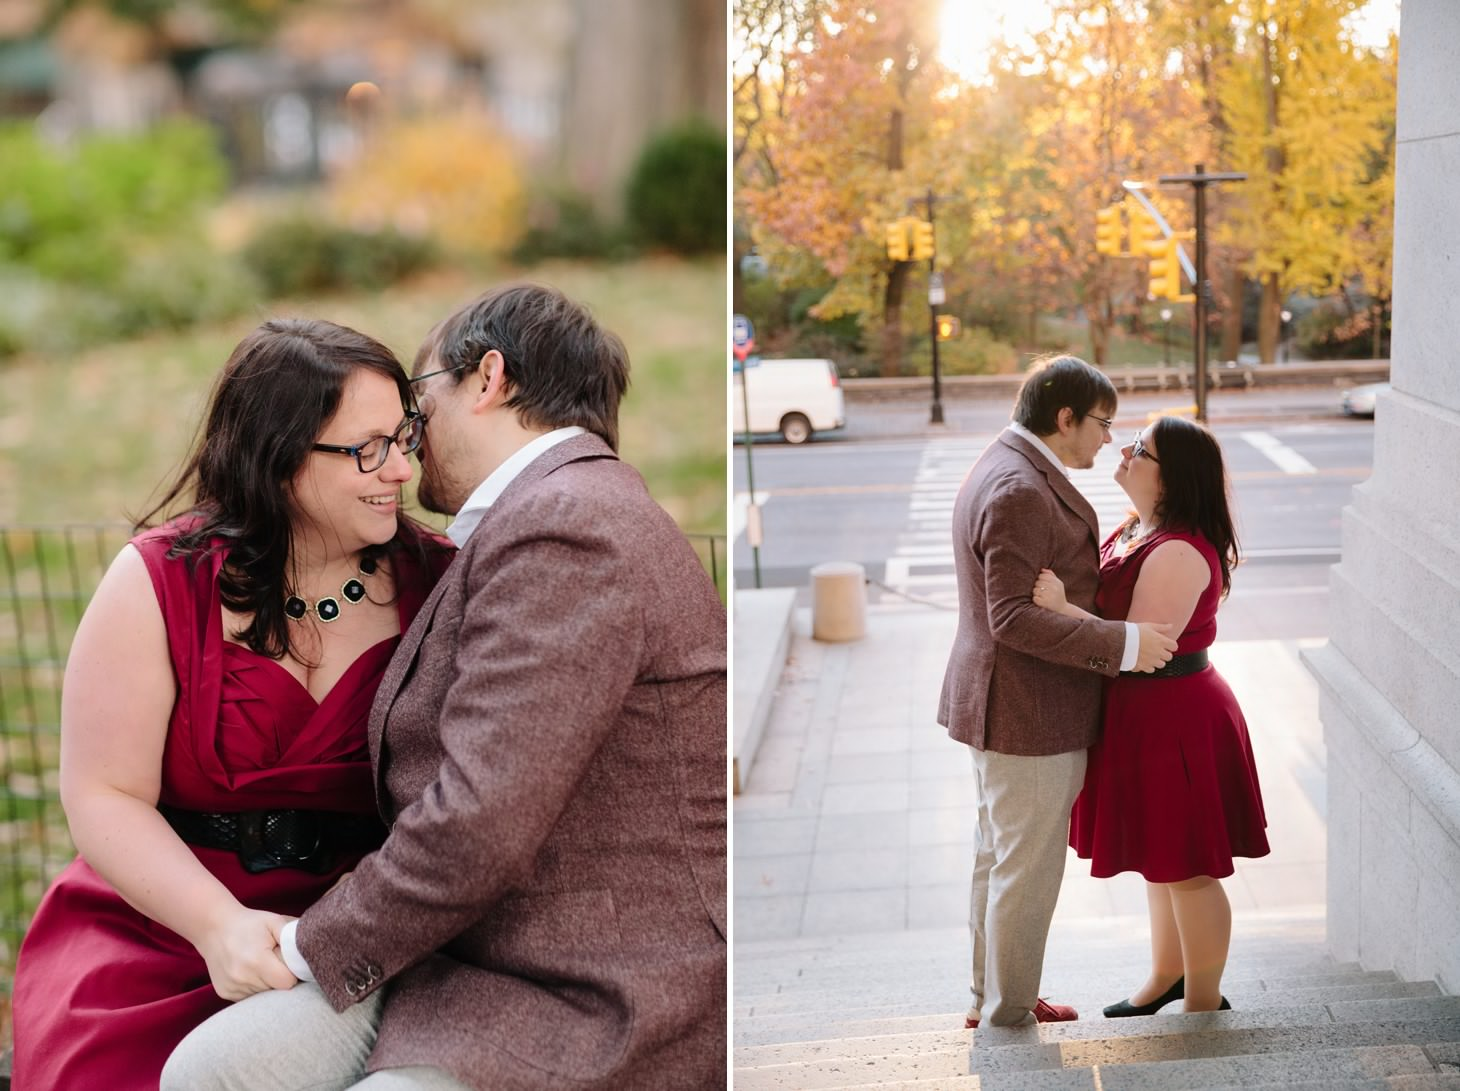 006-nyc-wedding-photographer-puppy-museum-of-natural-history-mud-coffee-fall-central-park-engagement.jpg